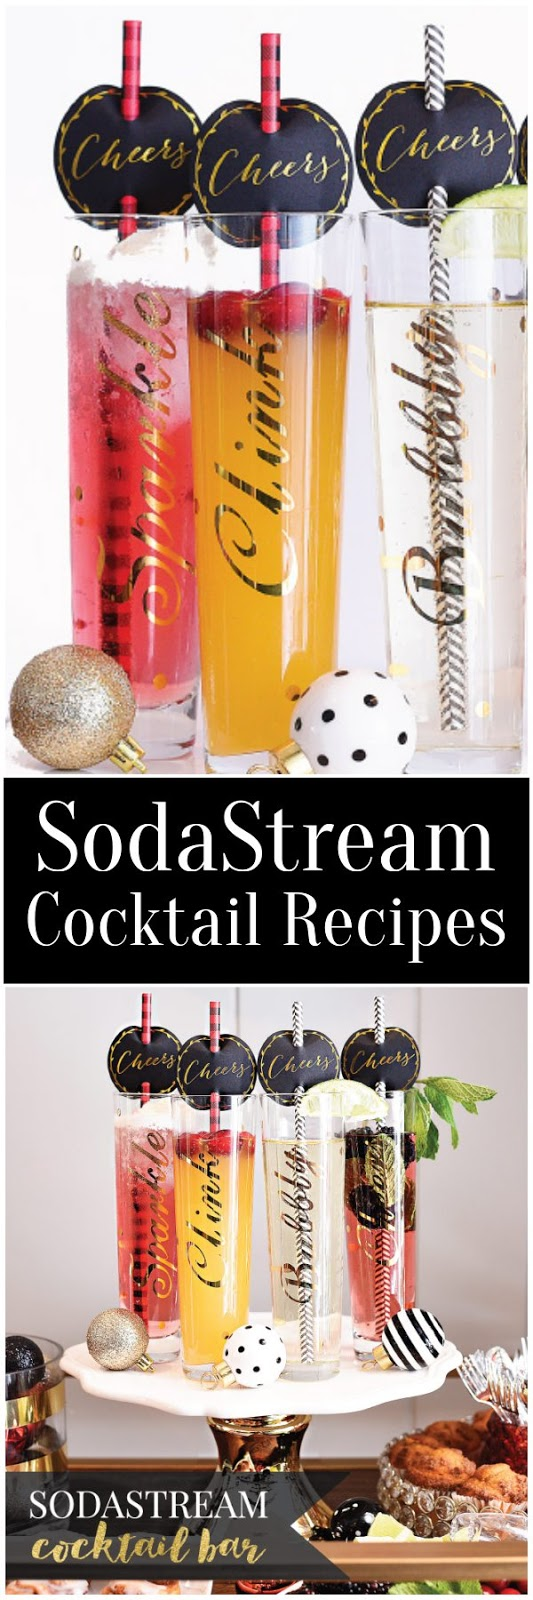 SodaStream Cocktail Recipes: perfect for low carb, Weight Watchers or anyone who loves skinny cocktails!